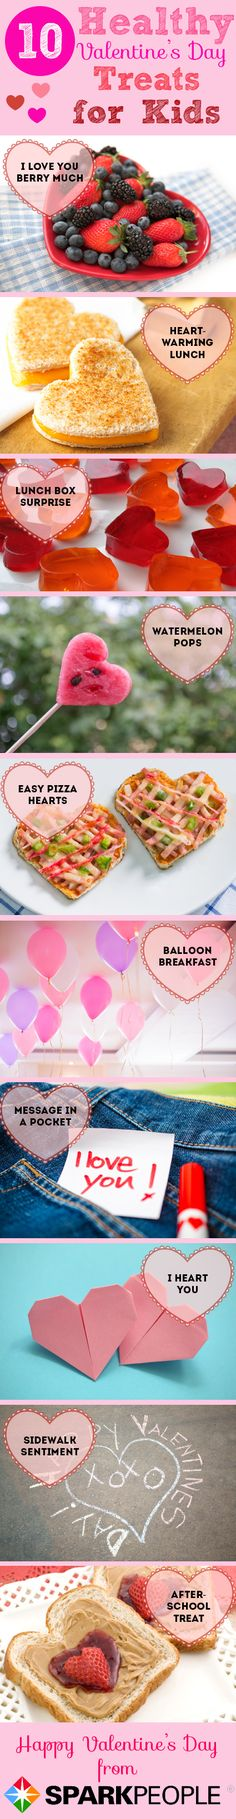 Kid-Friendly Valentine's Day Surprises--that are healthy! Click for recipes/instructions. #food #fun